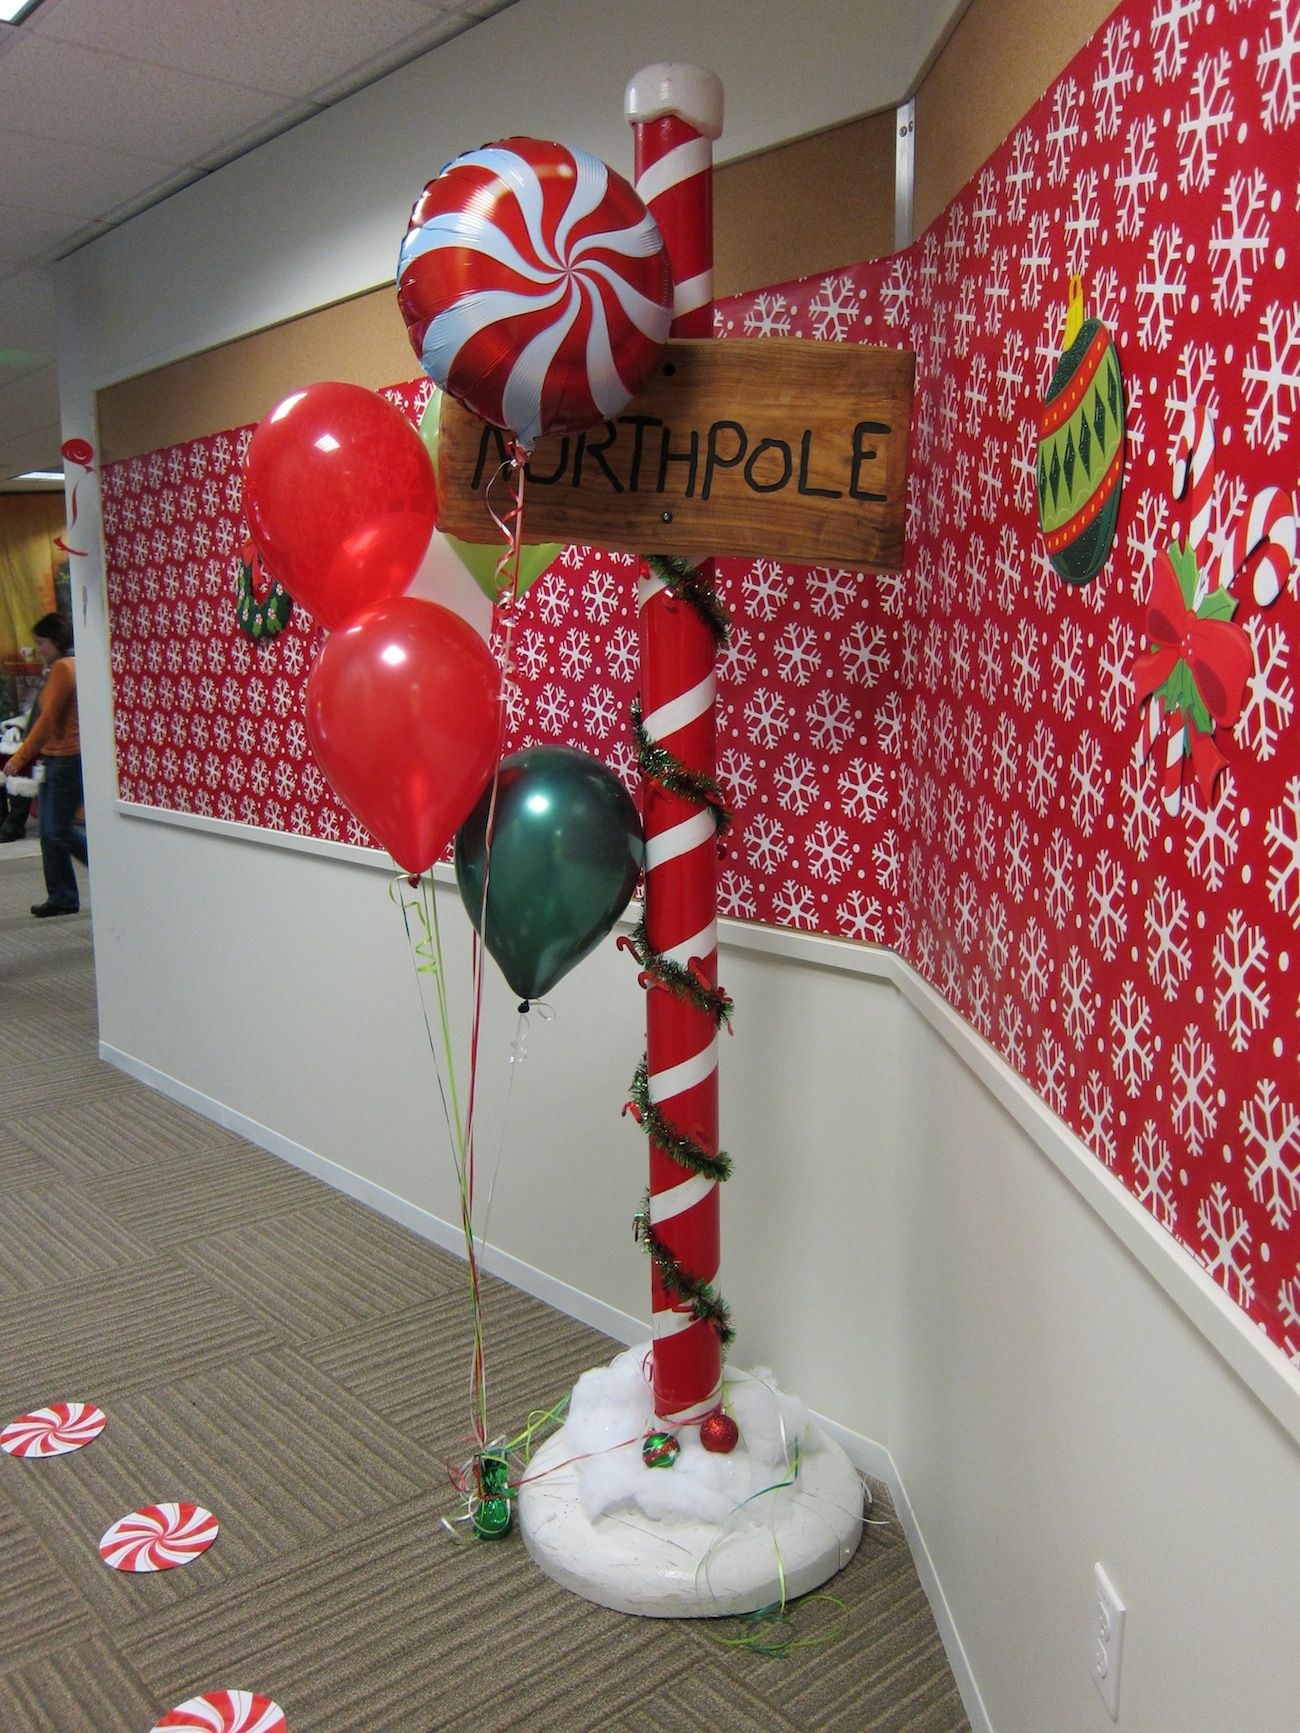 North pole decor first birthday party ideas pinterest for Decoration bureau